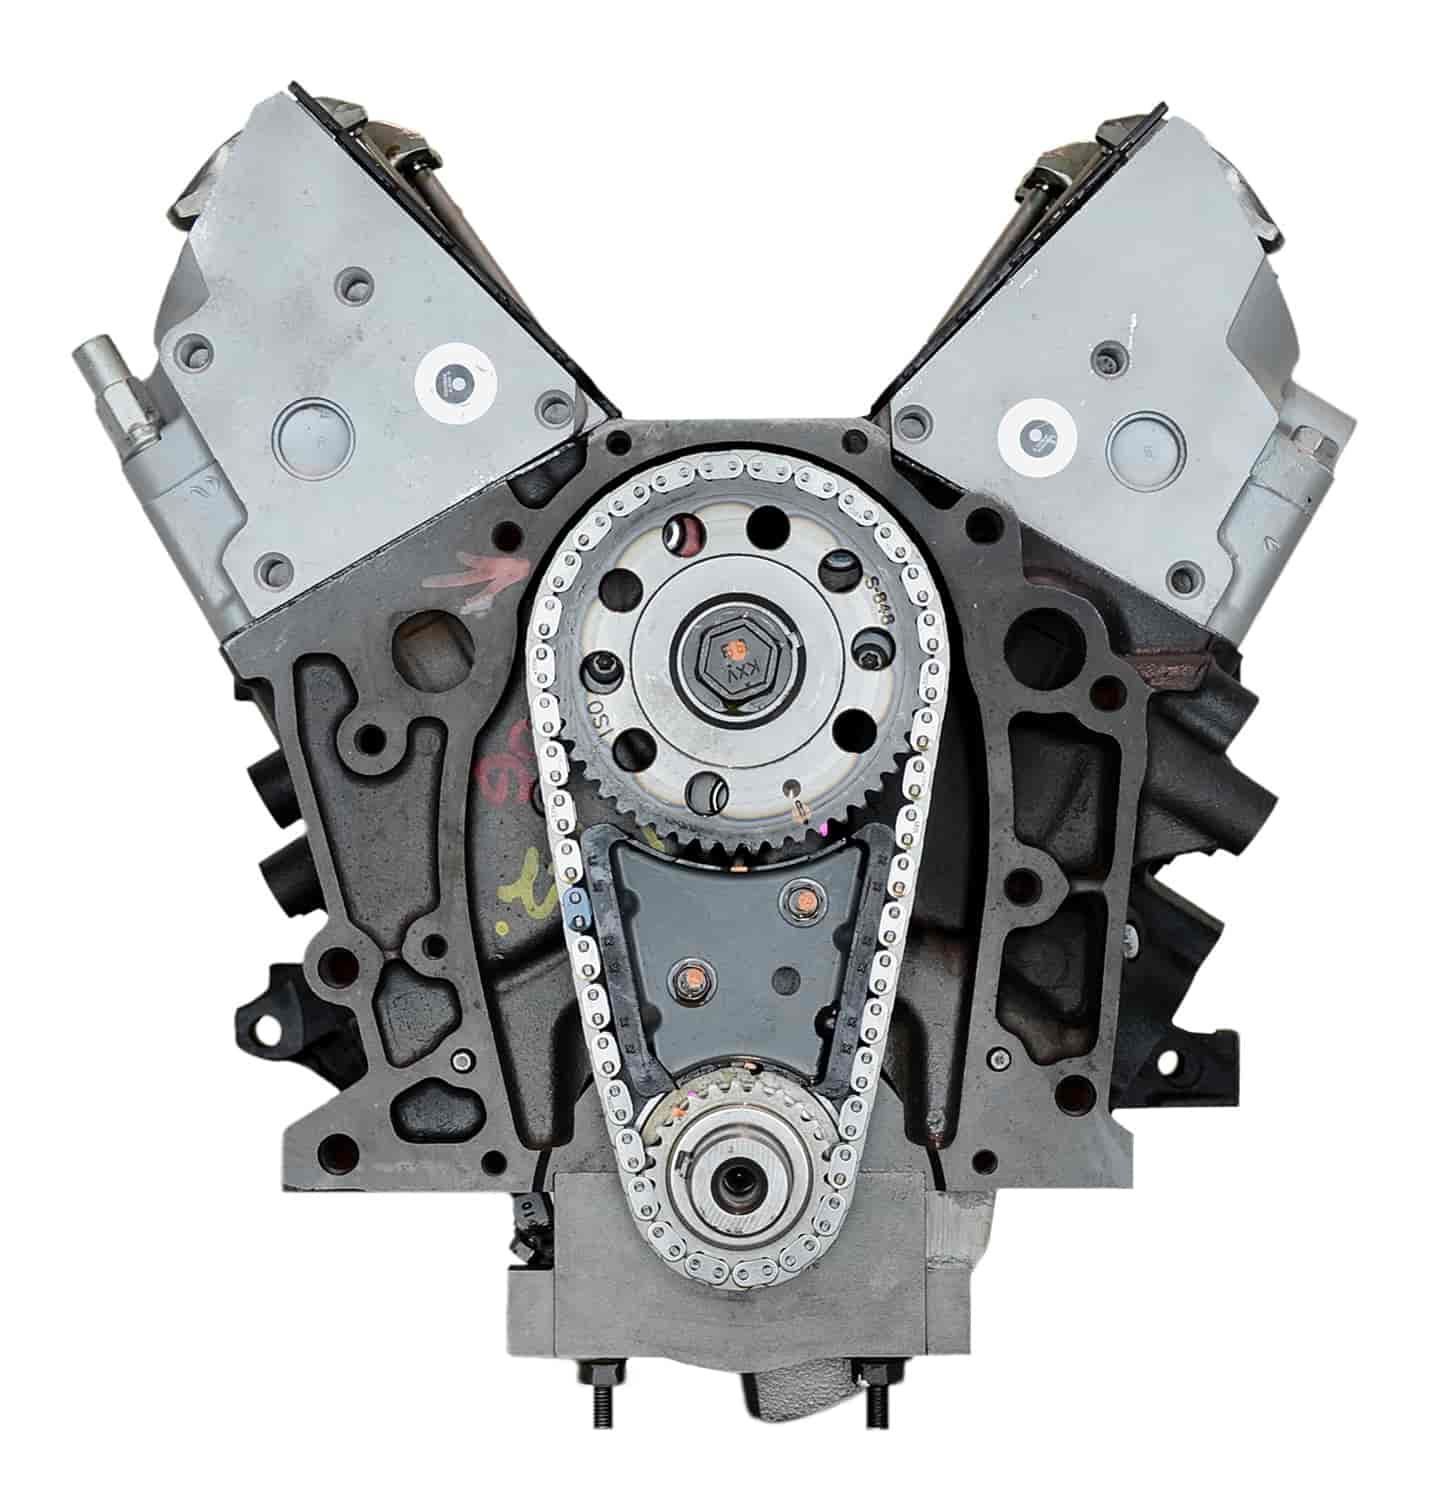 Atk Engines Dcwh Remanufactured Crate Engine For 2005 2006 Chevy Buick V6 Block Casting Numbers